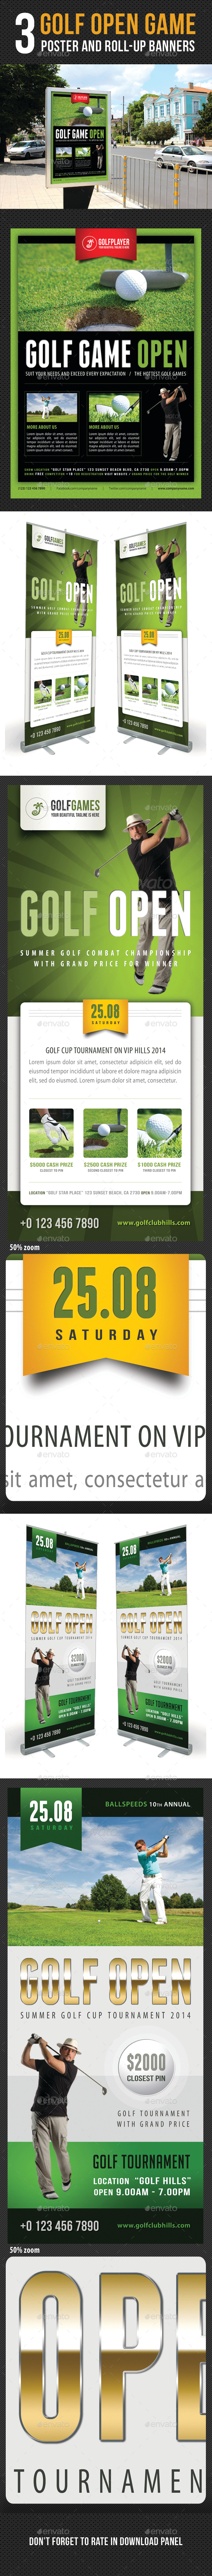 3 in 1 Golf Poster and Banners Bundle - Signage Print Templates